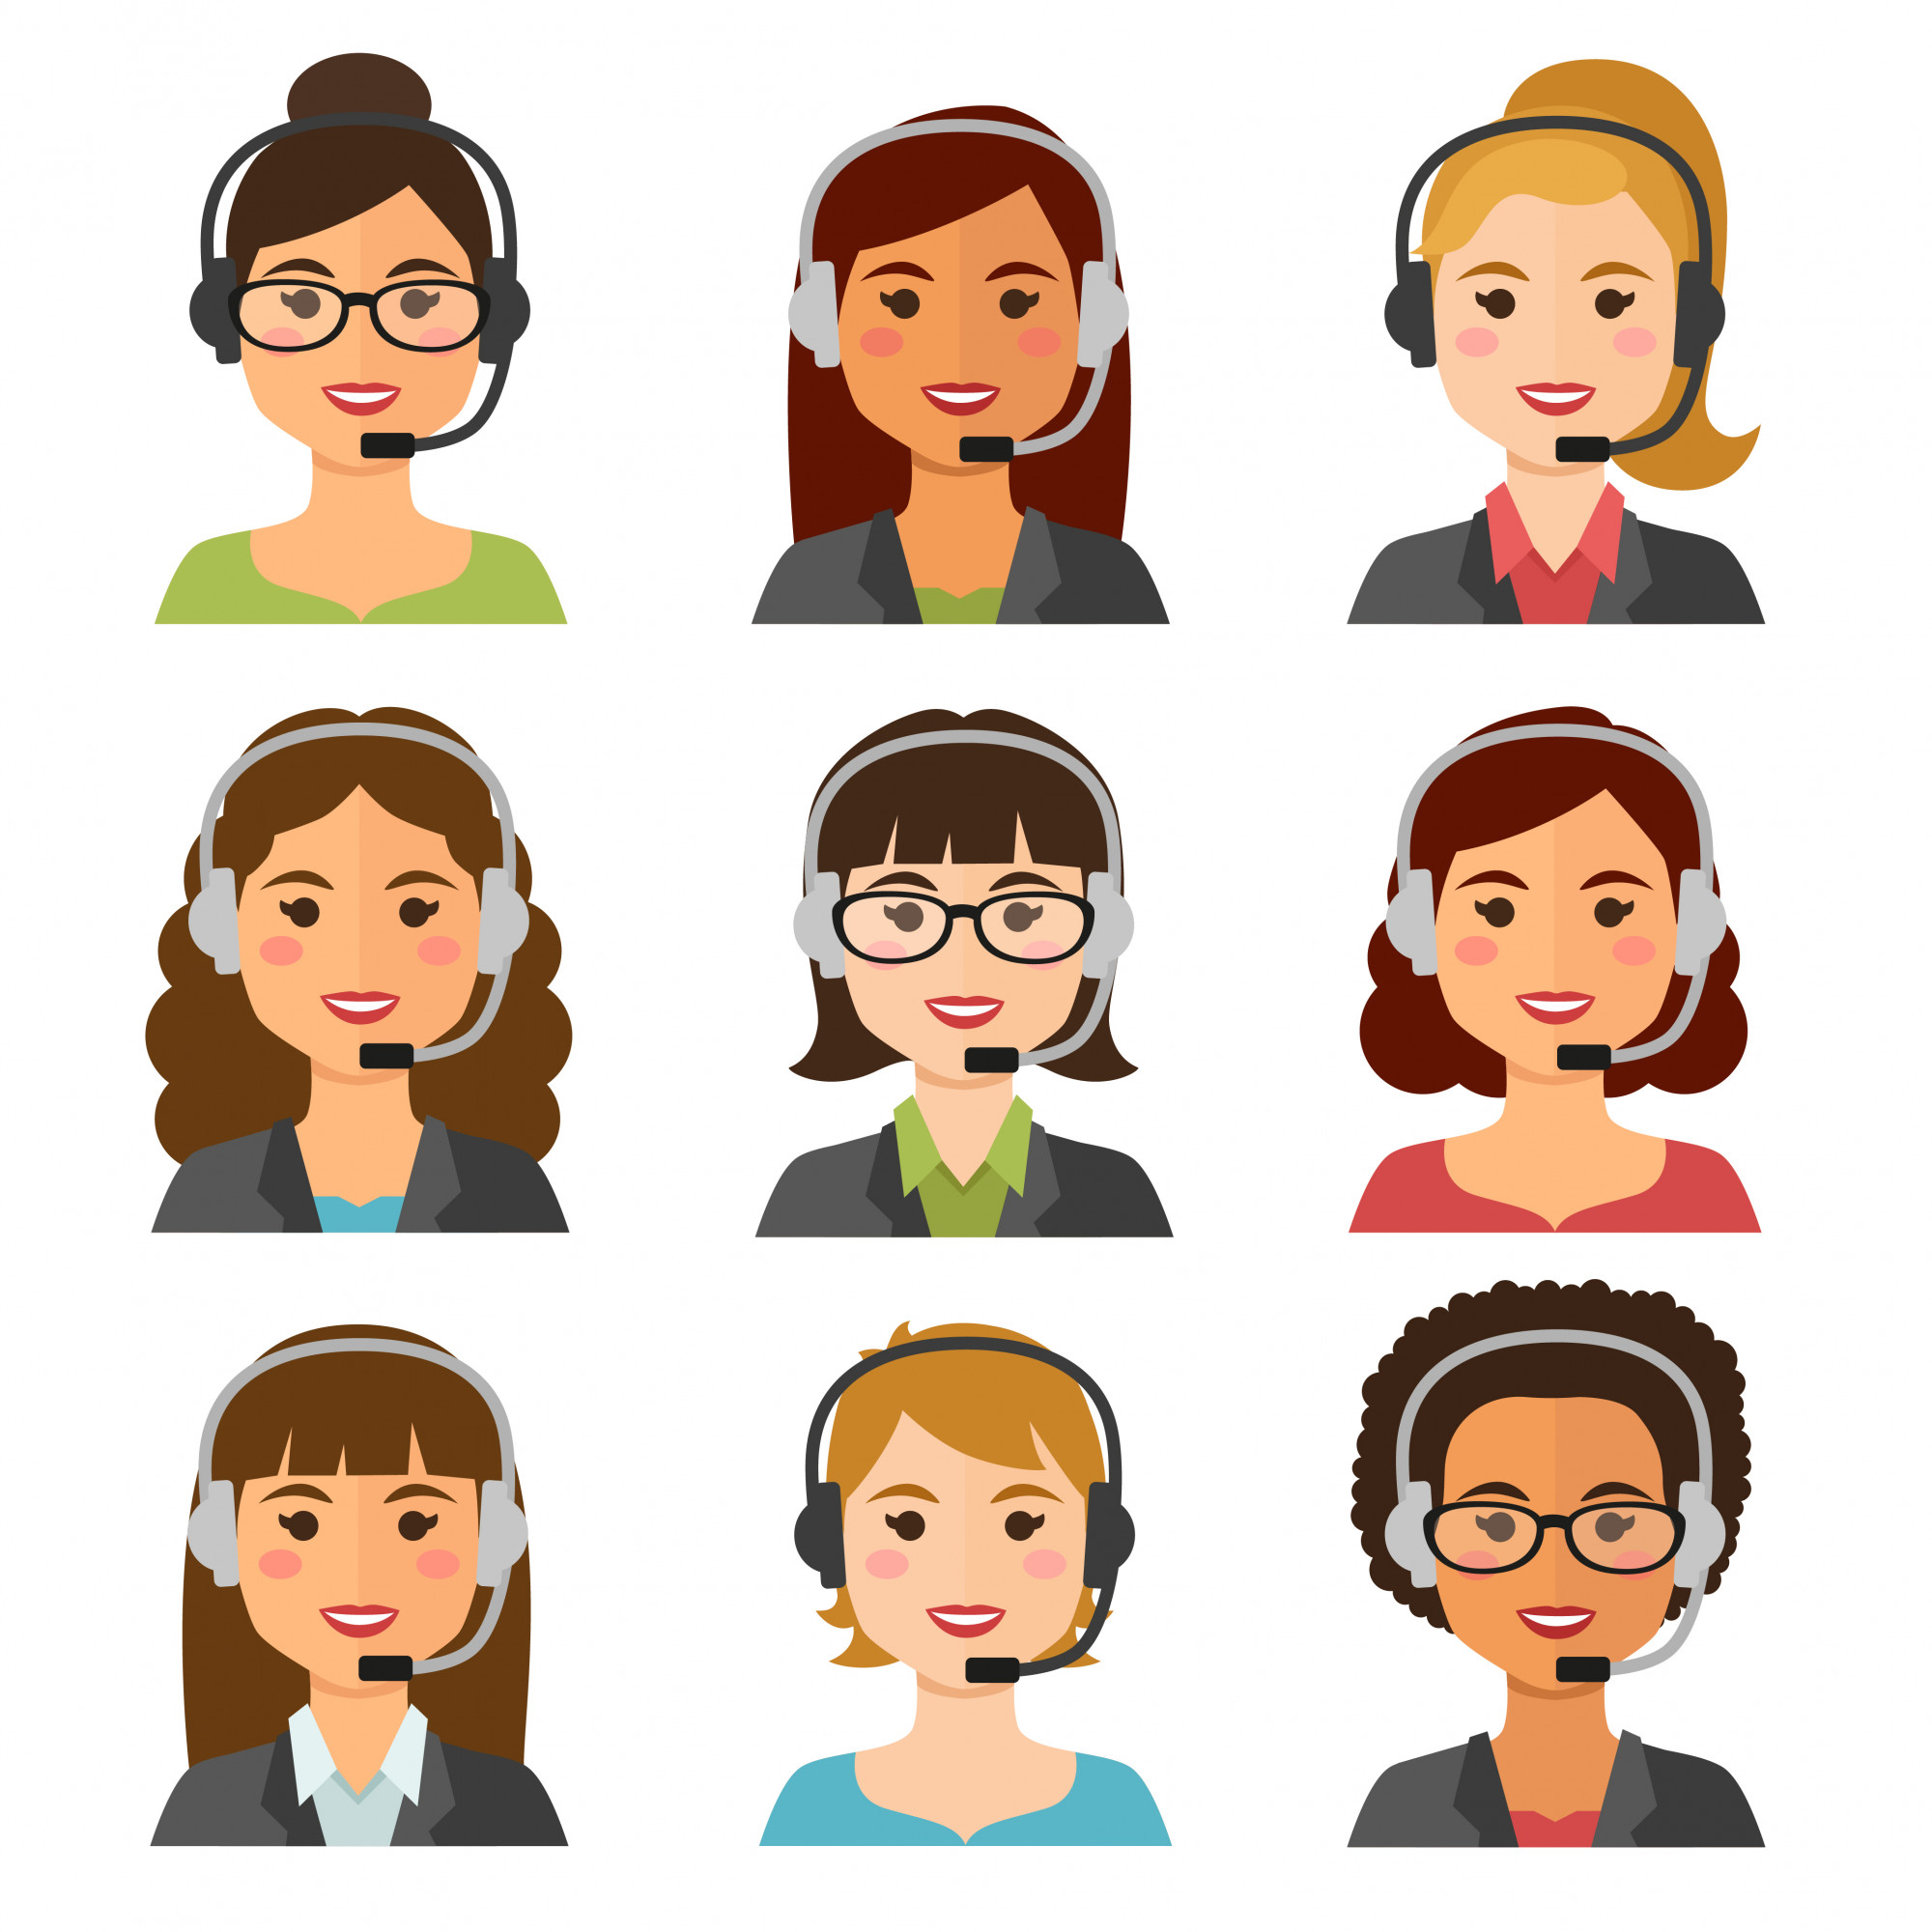 Call center agents avatars, business woman collection